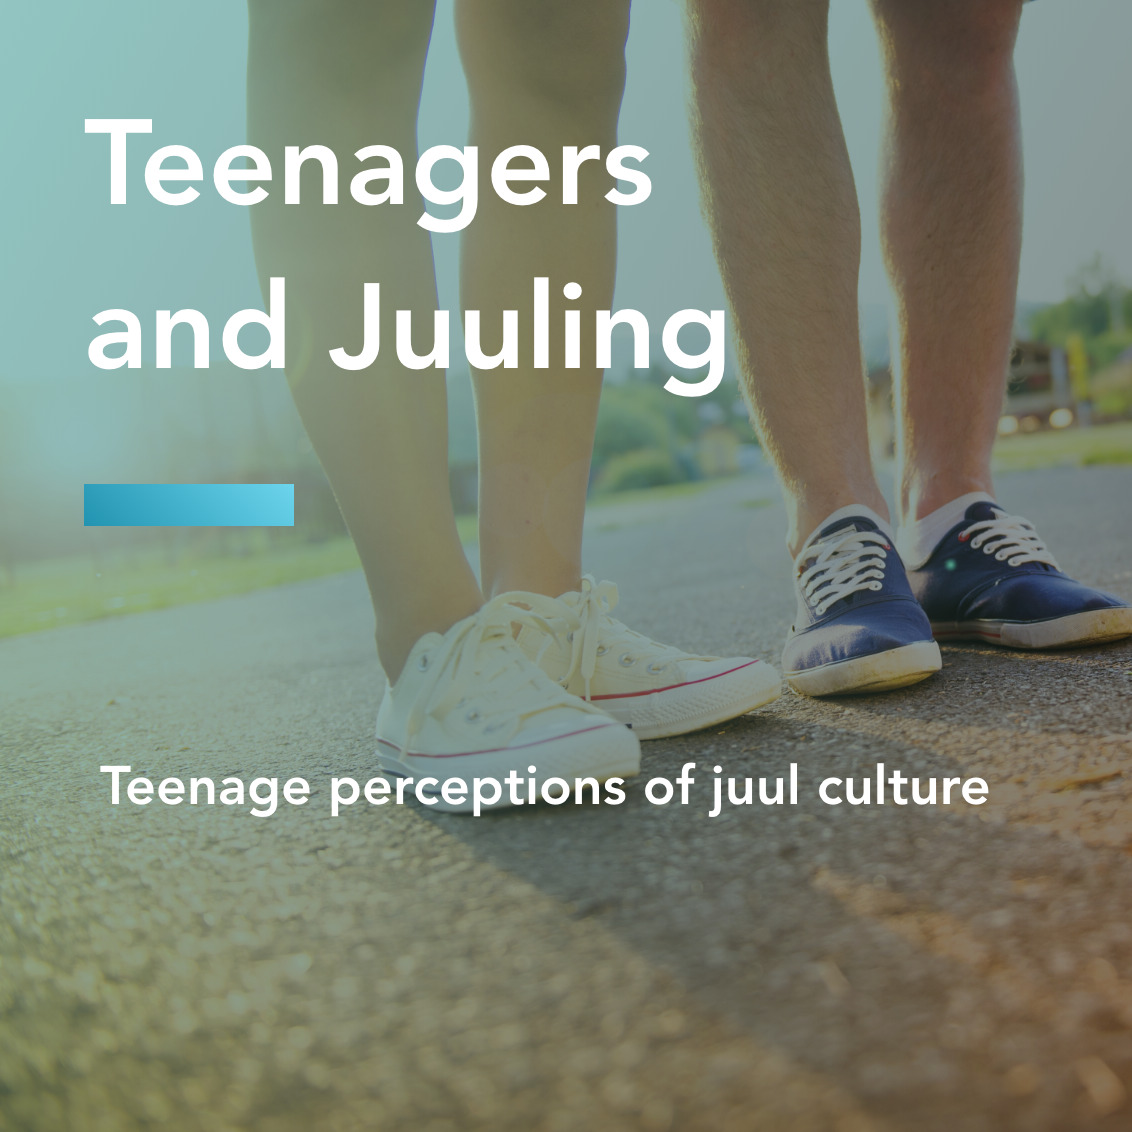 teens and juuling title